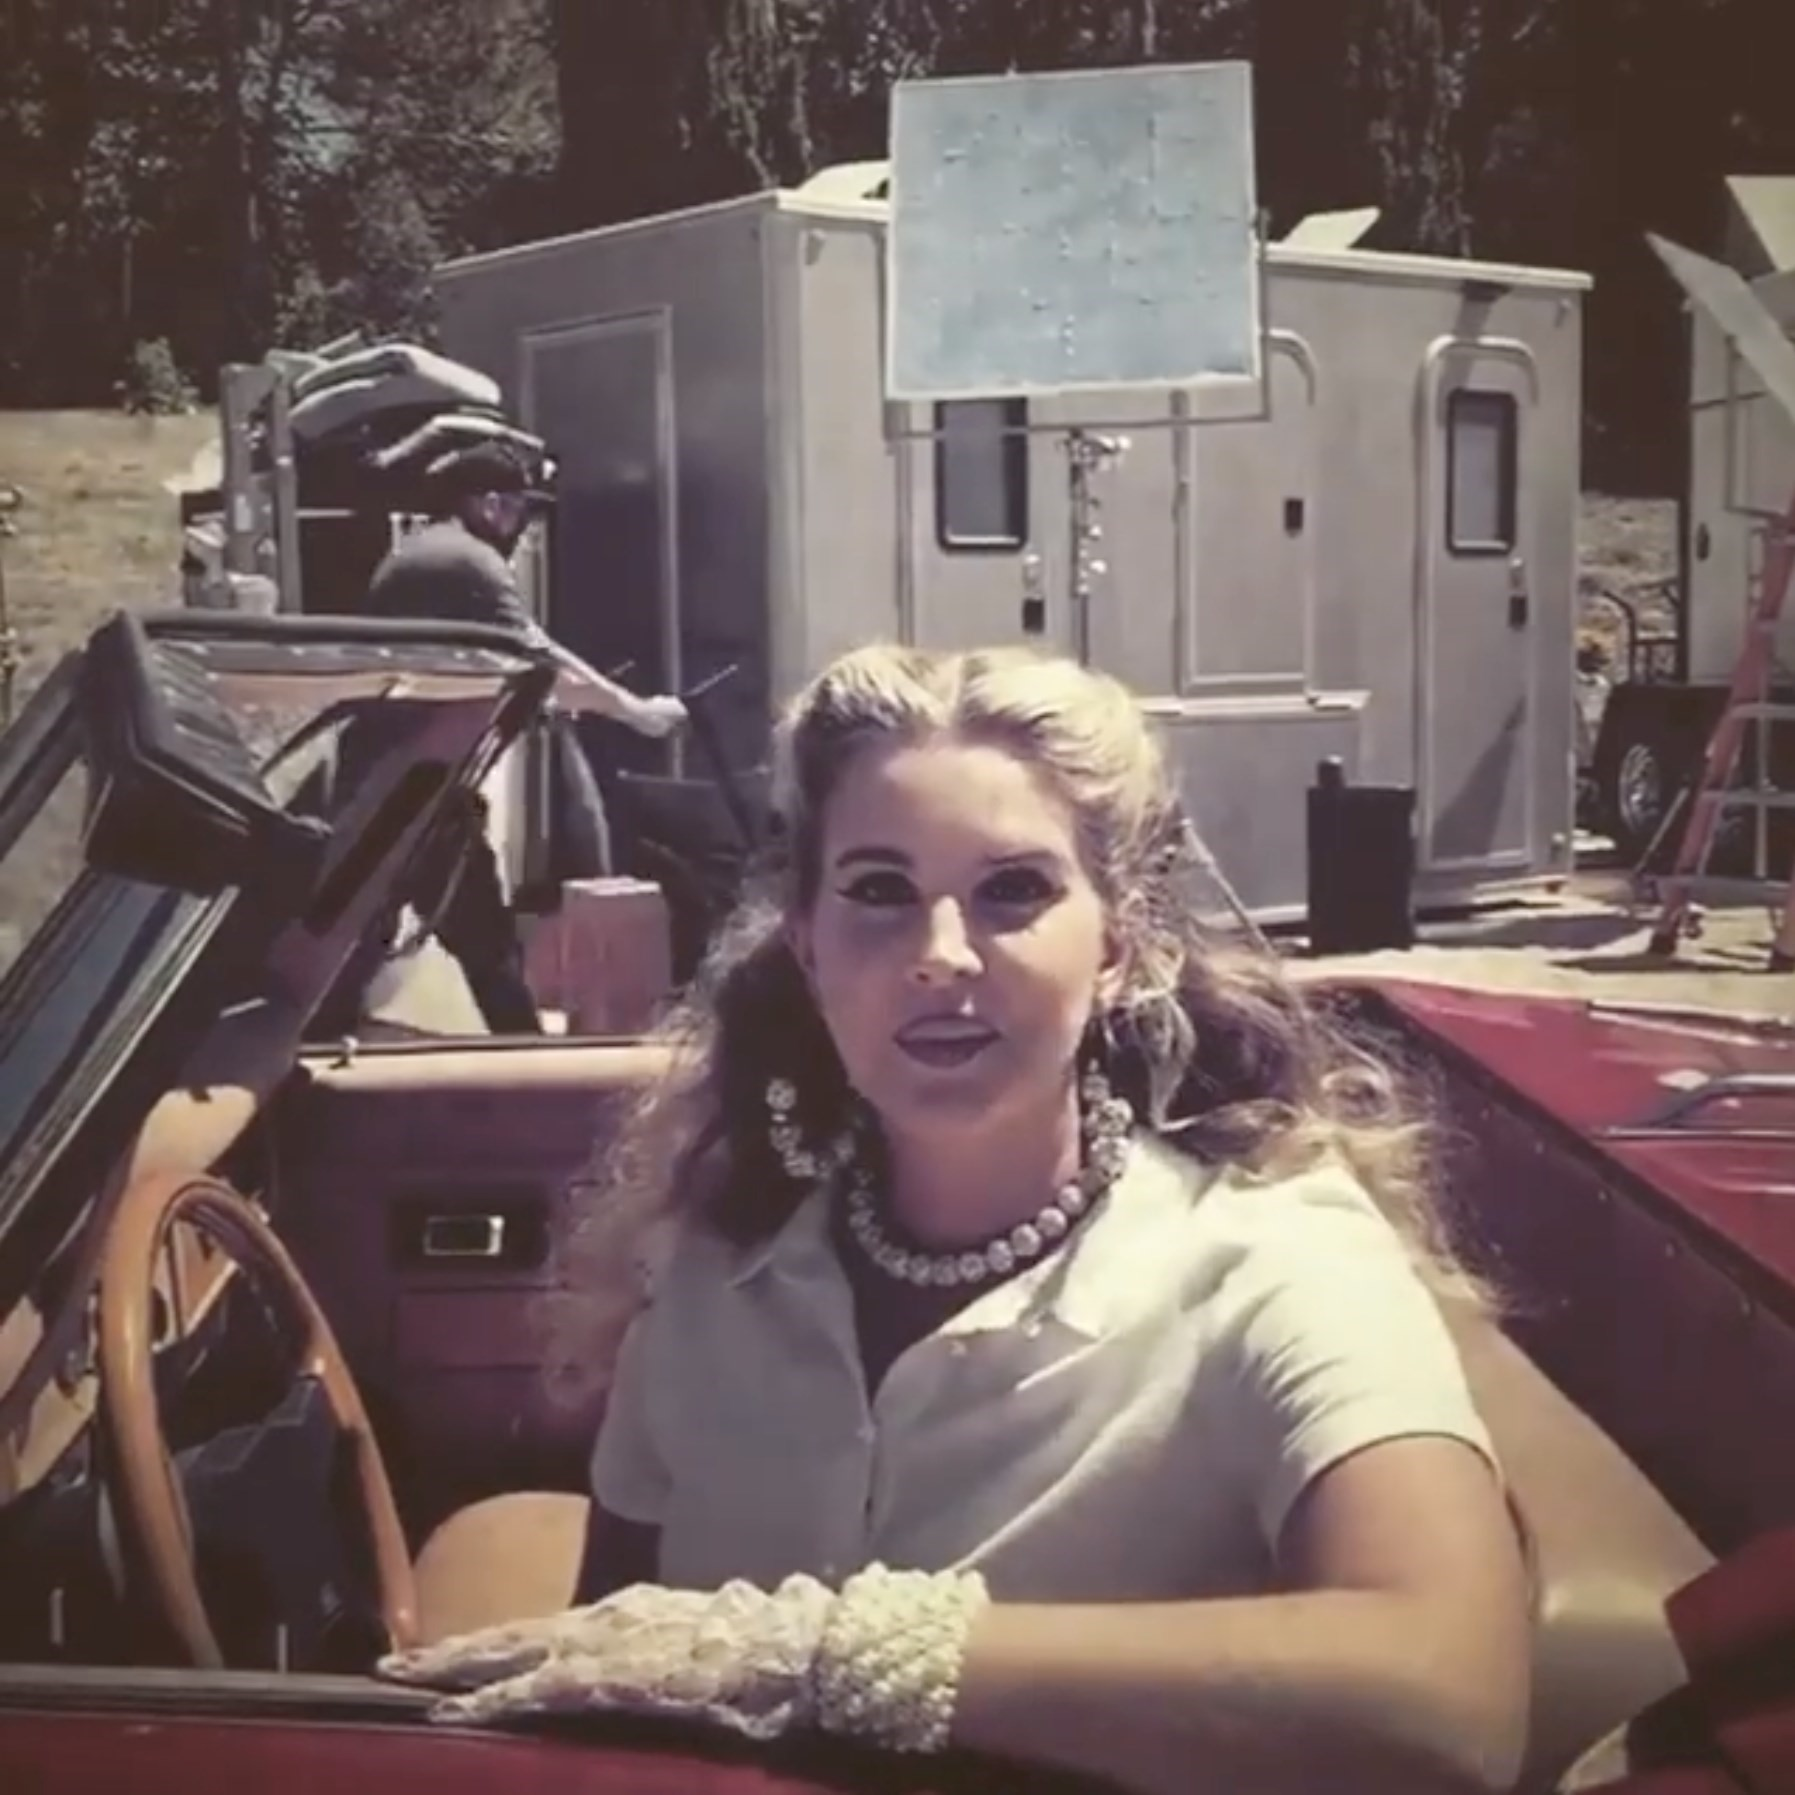 Lana Del Rey Teases The Video Set For Chemtrails Over The Country Club Dazed